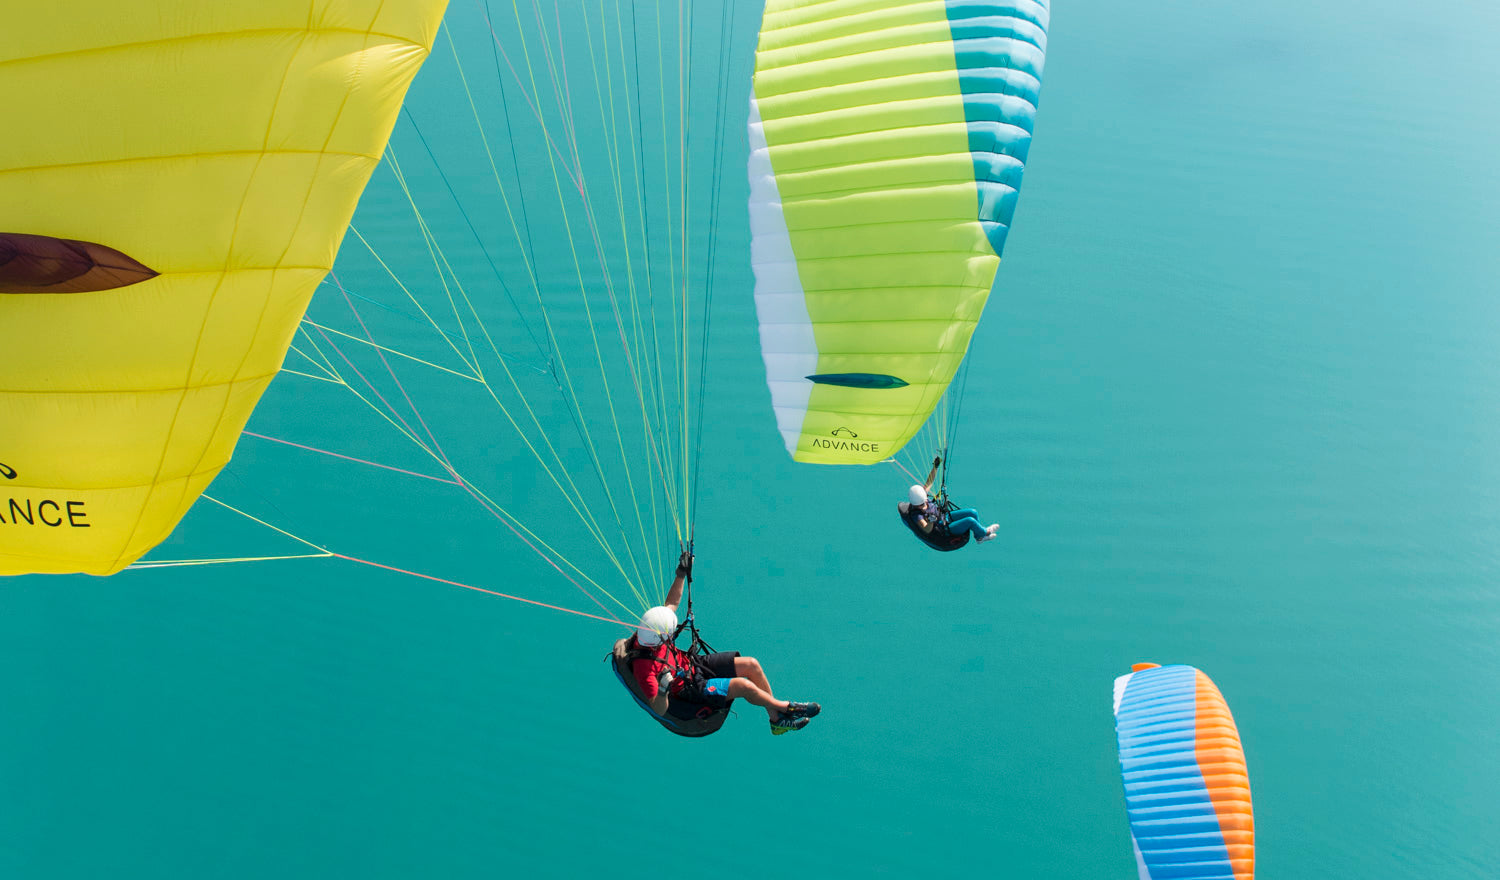 Advance ALPHA 6 paraglider